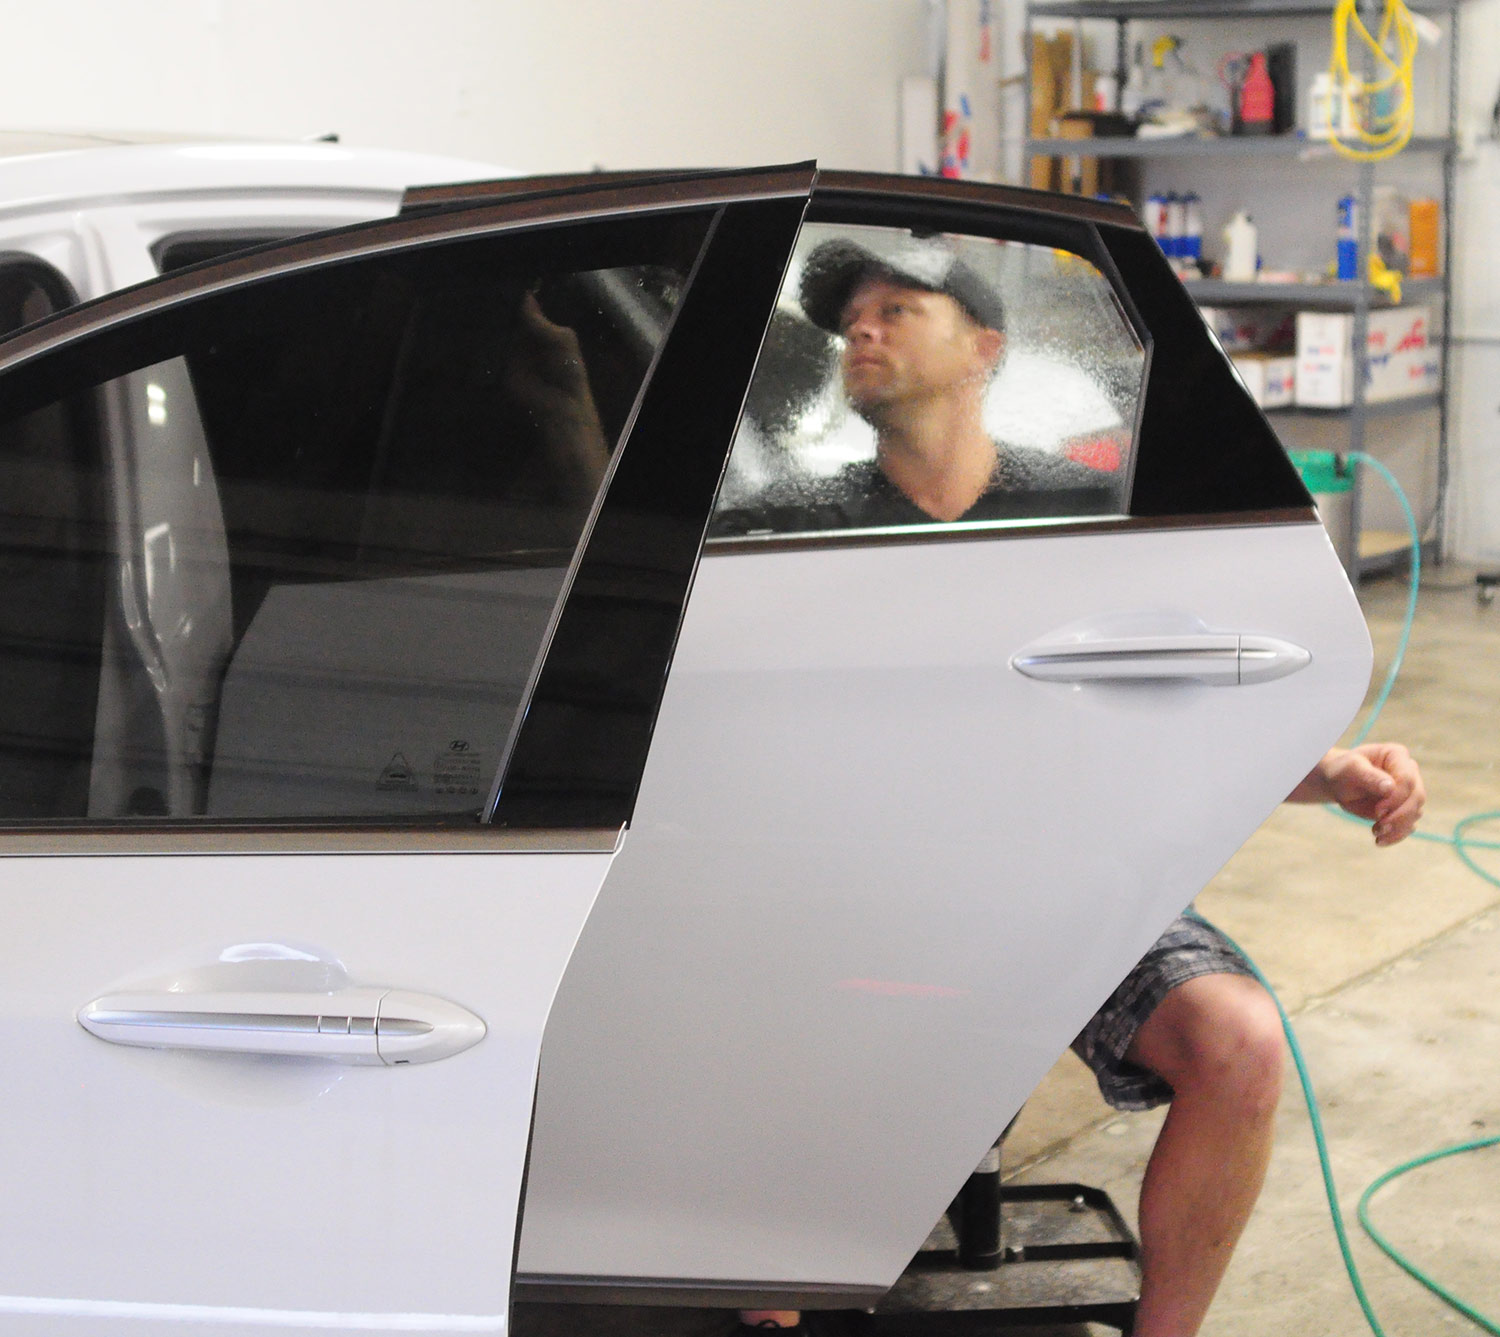 Installing ceramic window tint on a Genesis coupe.